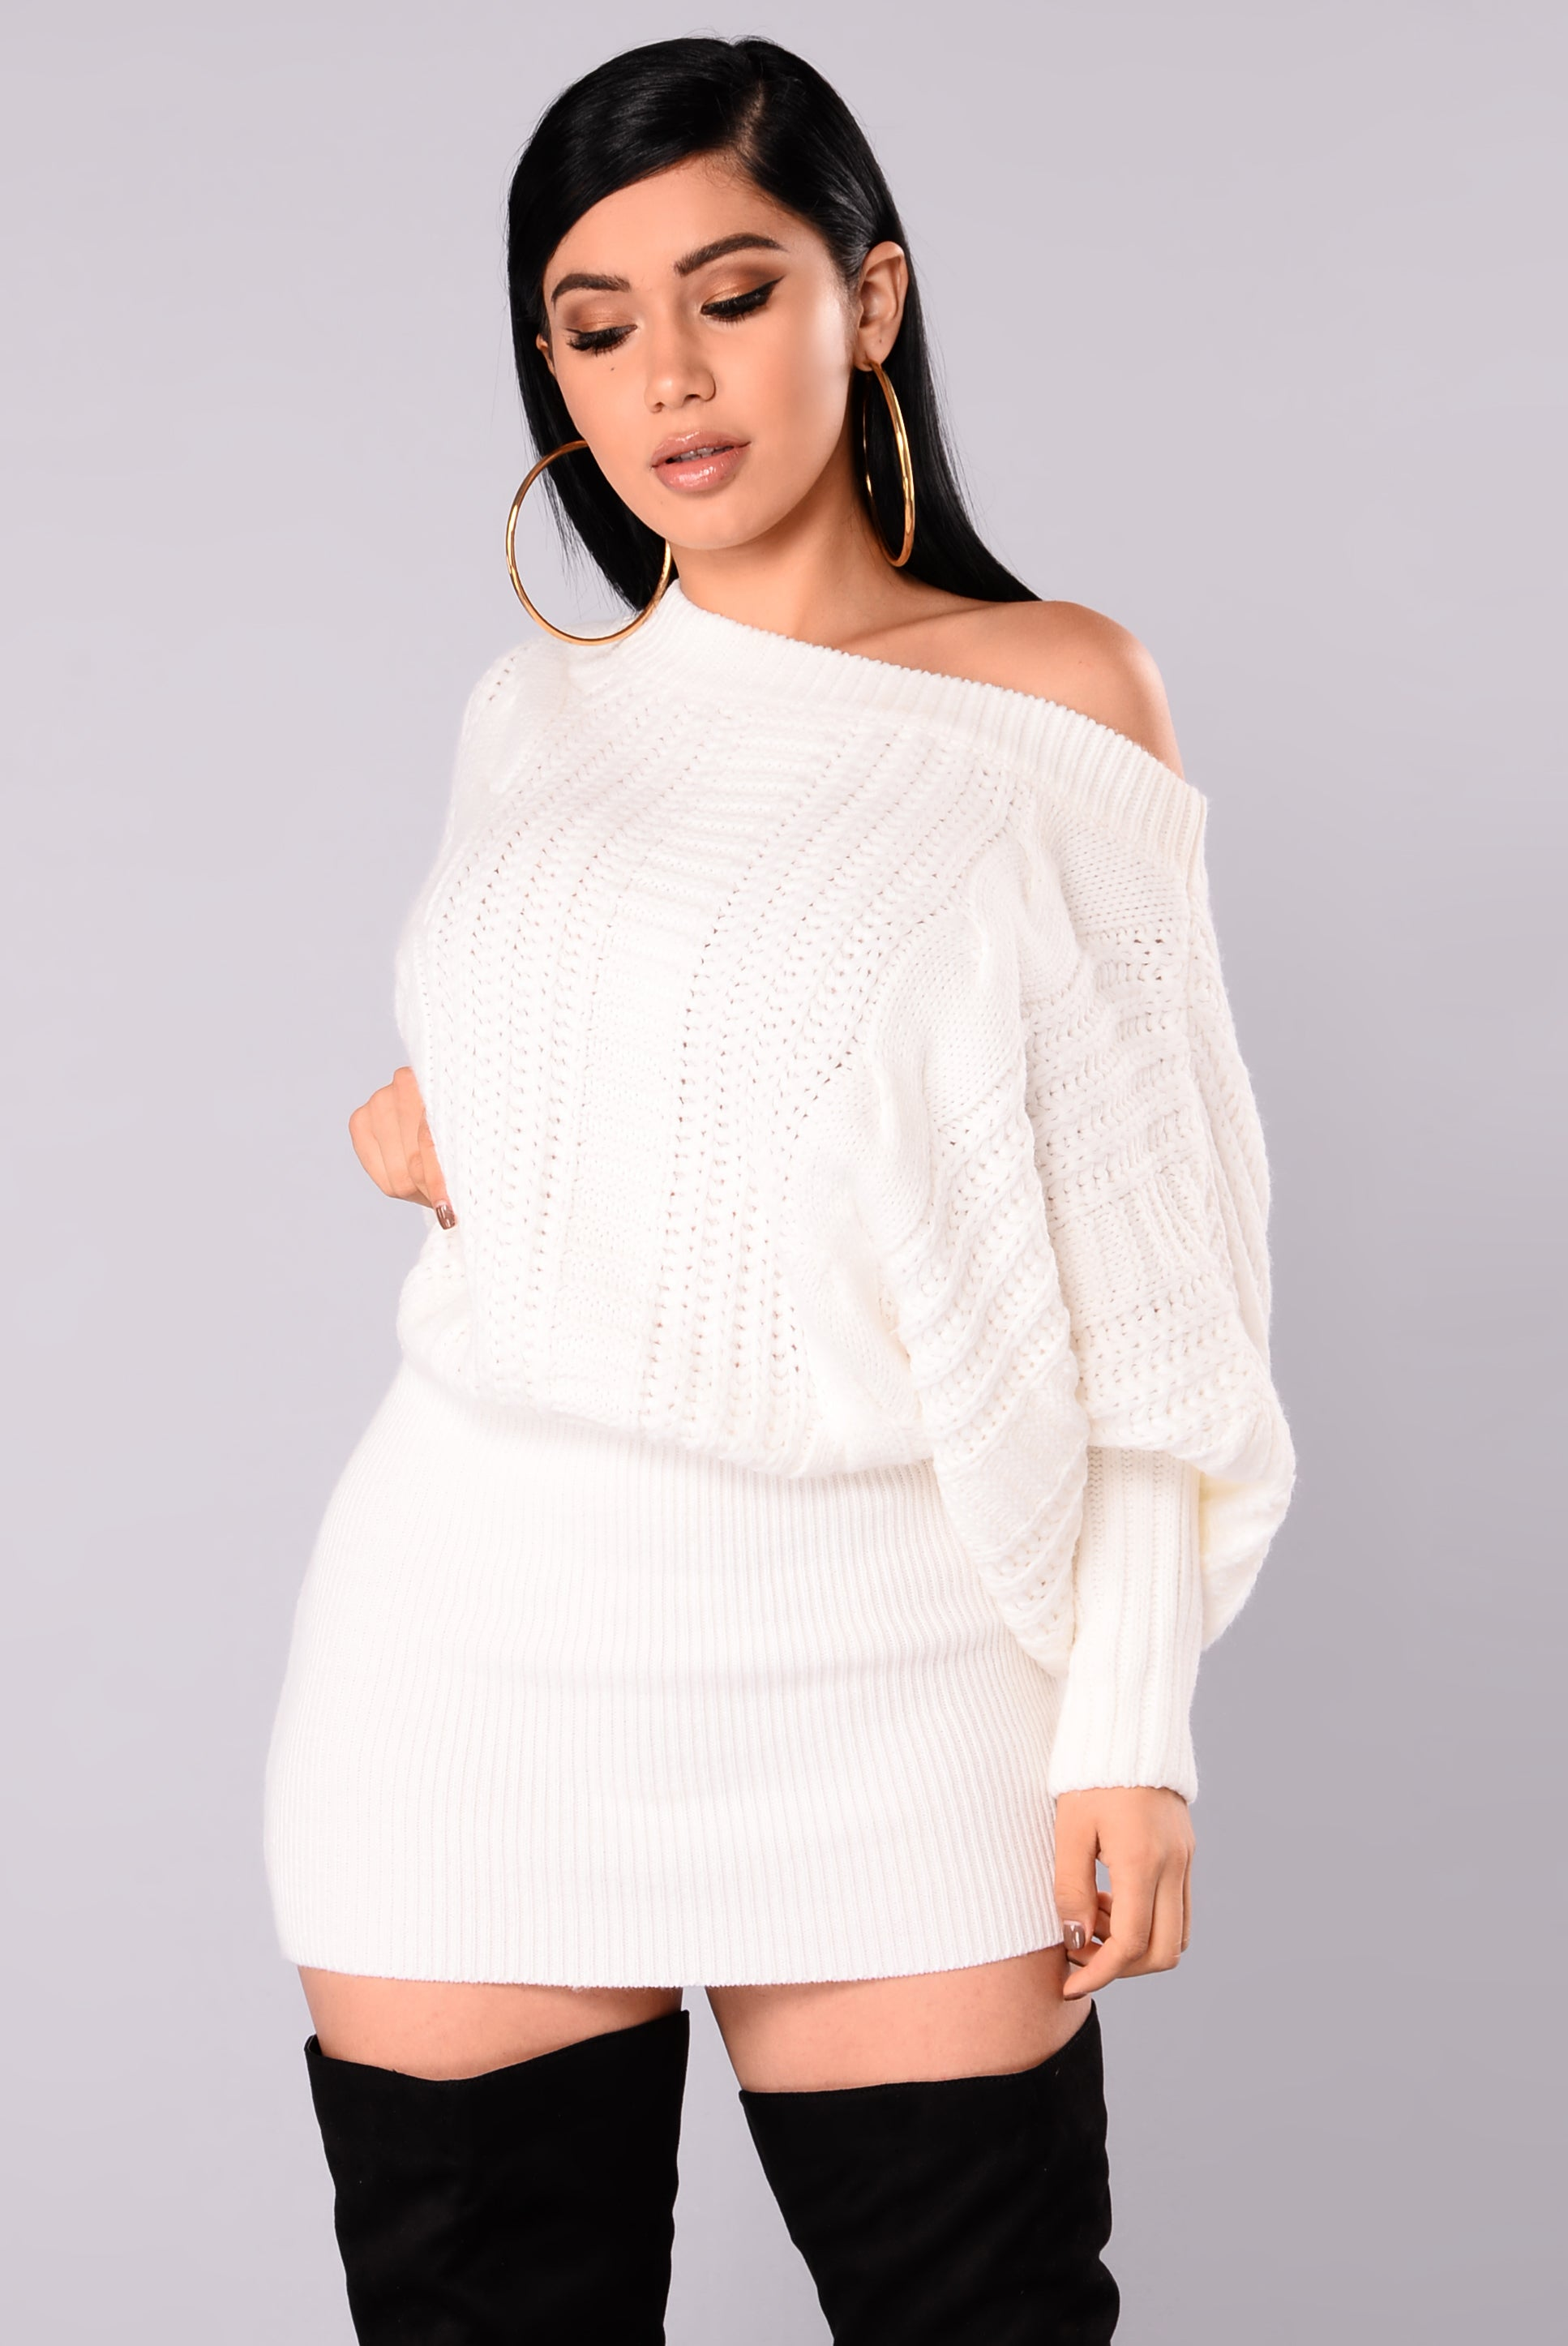 cbe36d0a02 Millie cable knit sweater white jpg 1934x2893 White cable knit sweater